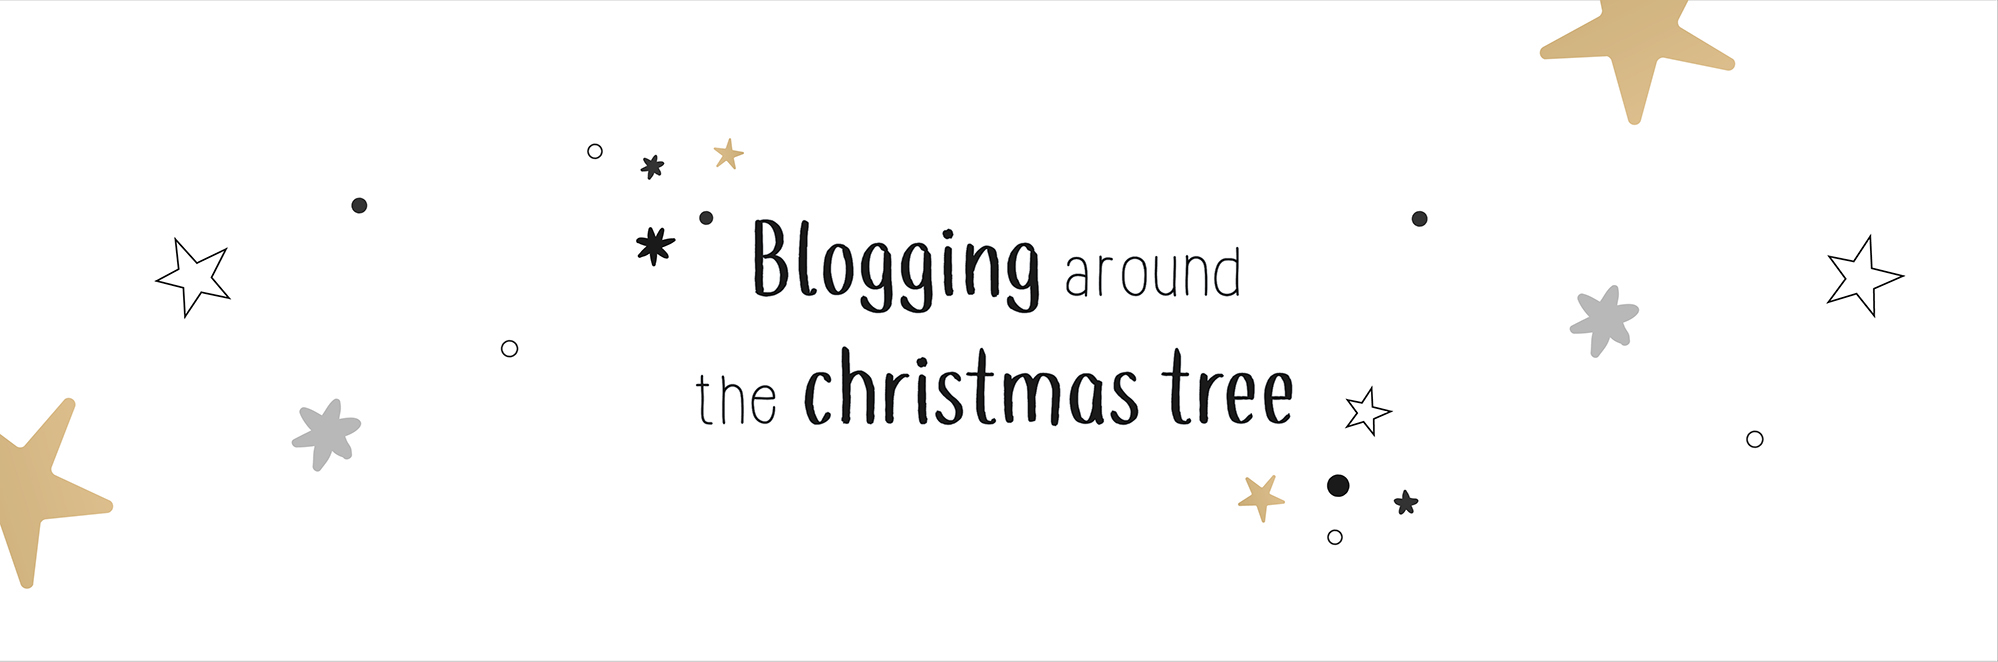 bloggingaroundthechristmastree